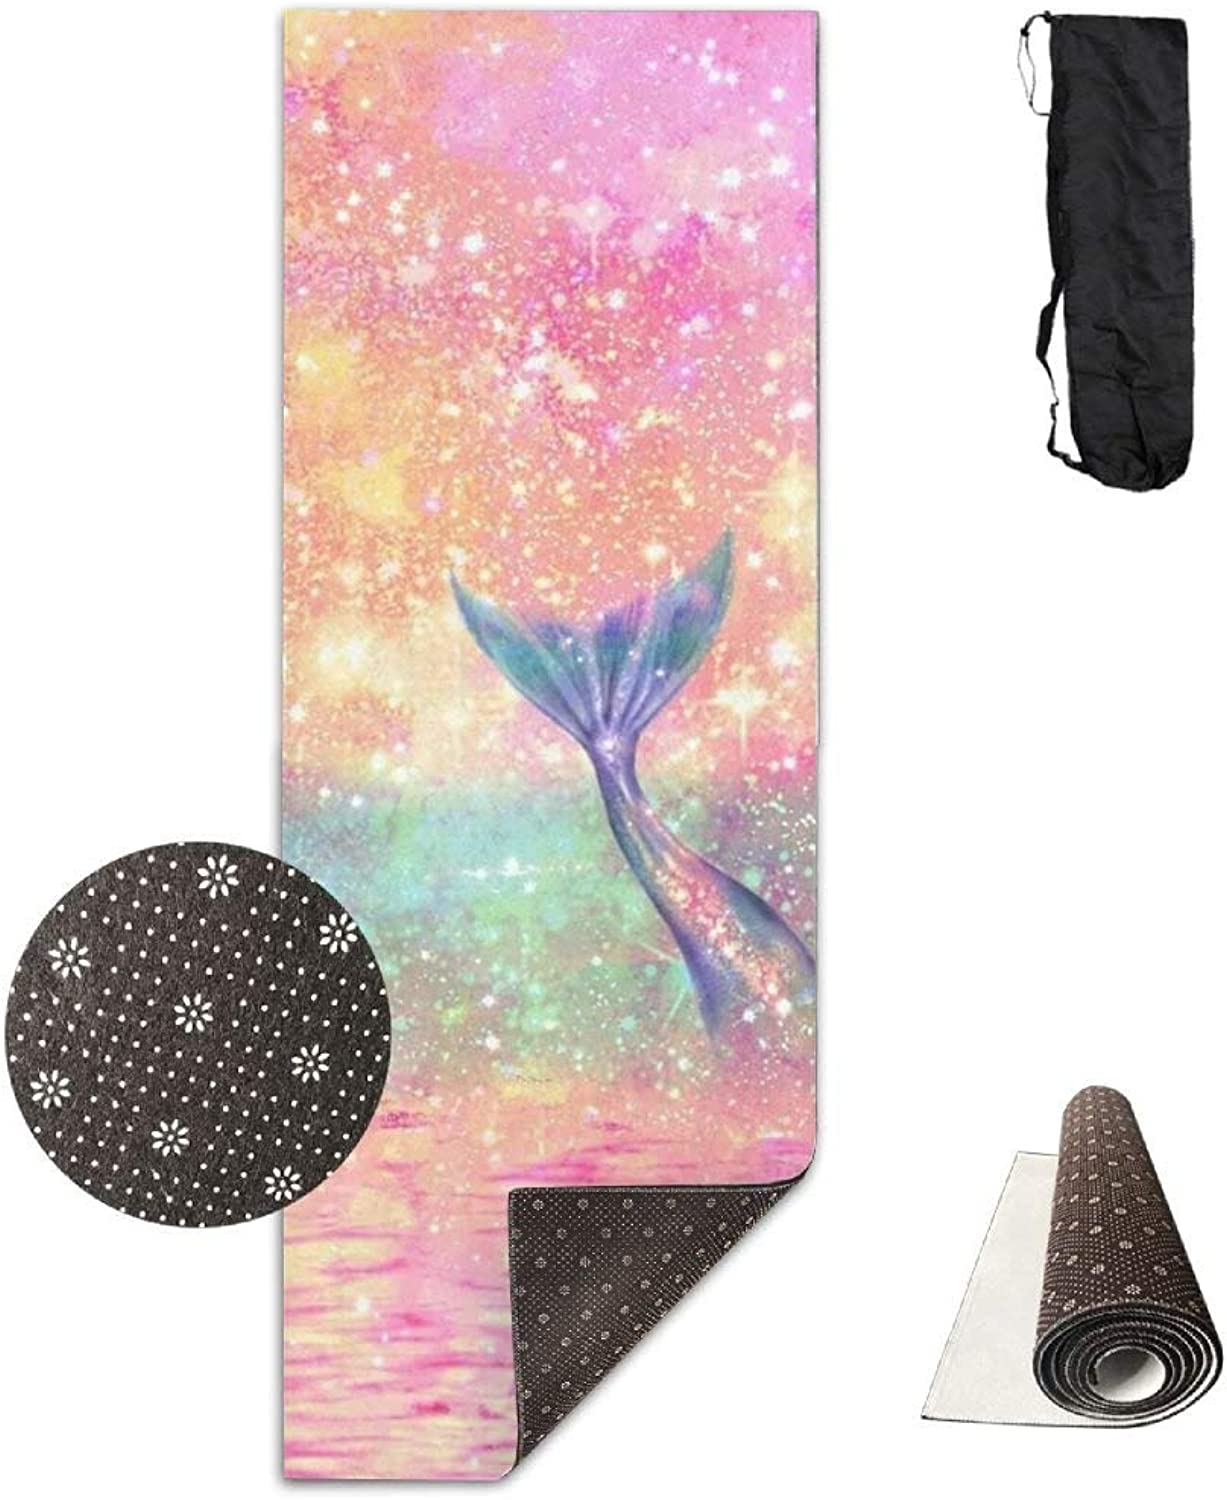 Shiny Pink Beach Mermaid Premium Print Durable Concise Fun Printing Yoga Mat for Yoga, Workout, Fitness 72X24 Inch